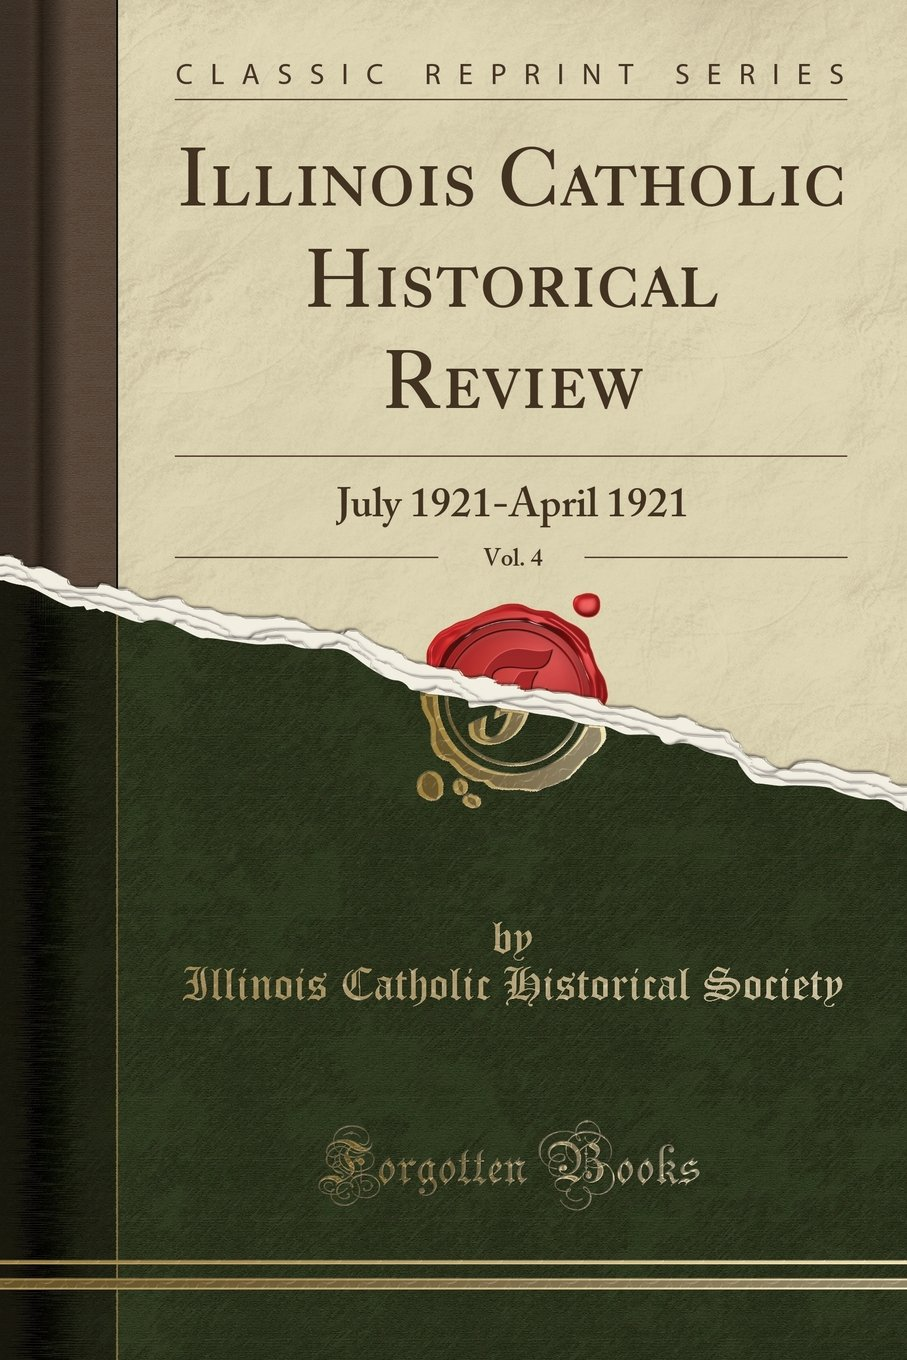 Download Illinois Catholic Historical Review, Vol. 4: July 1921-April 1921 (Classic Reprint) PDF